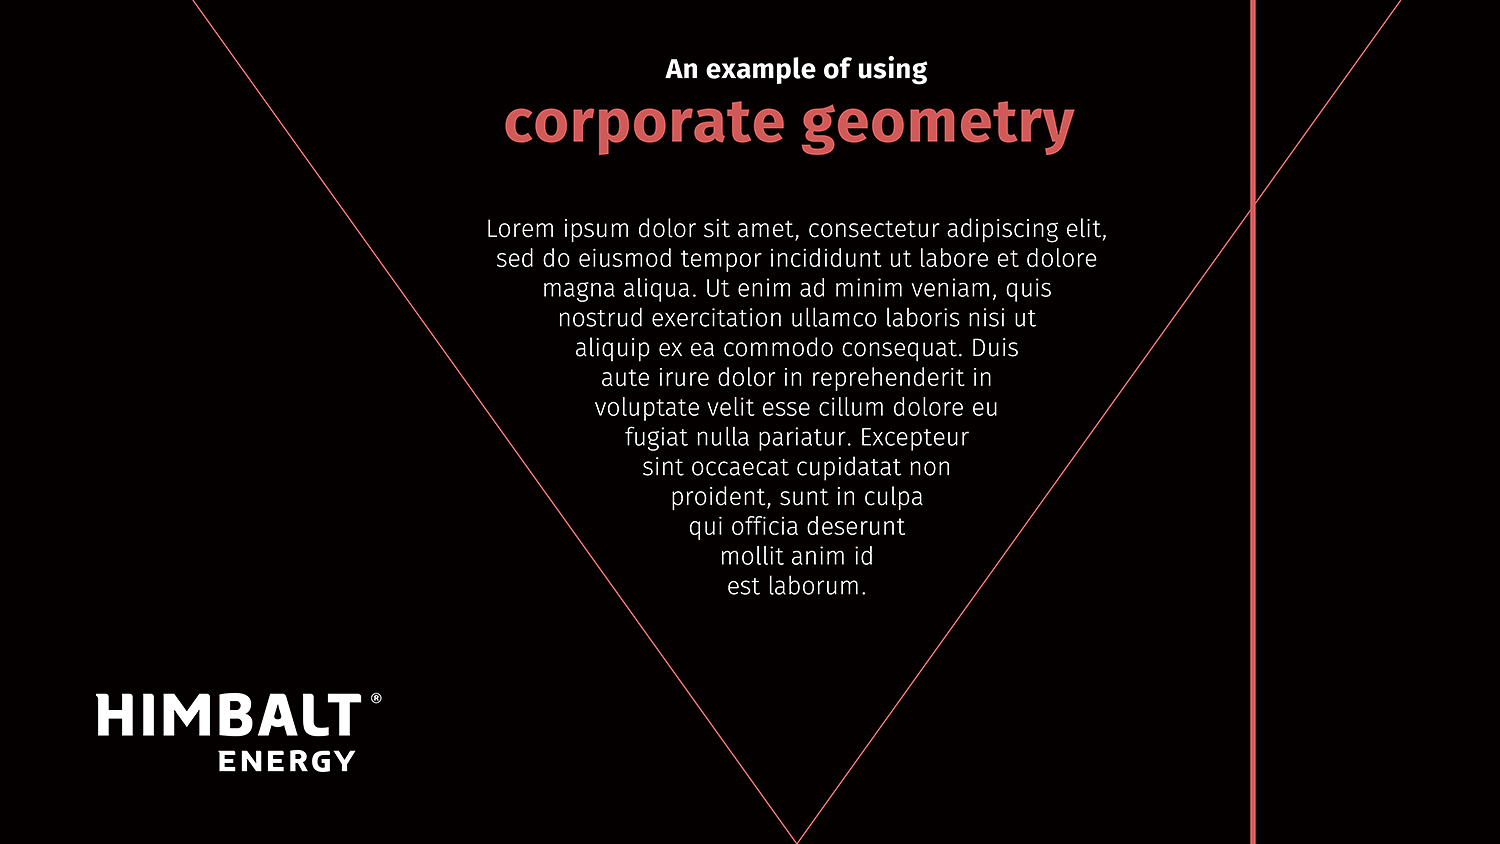 Signature geometry, example of using. Himbalt corporate graphic style.